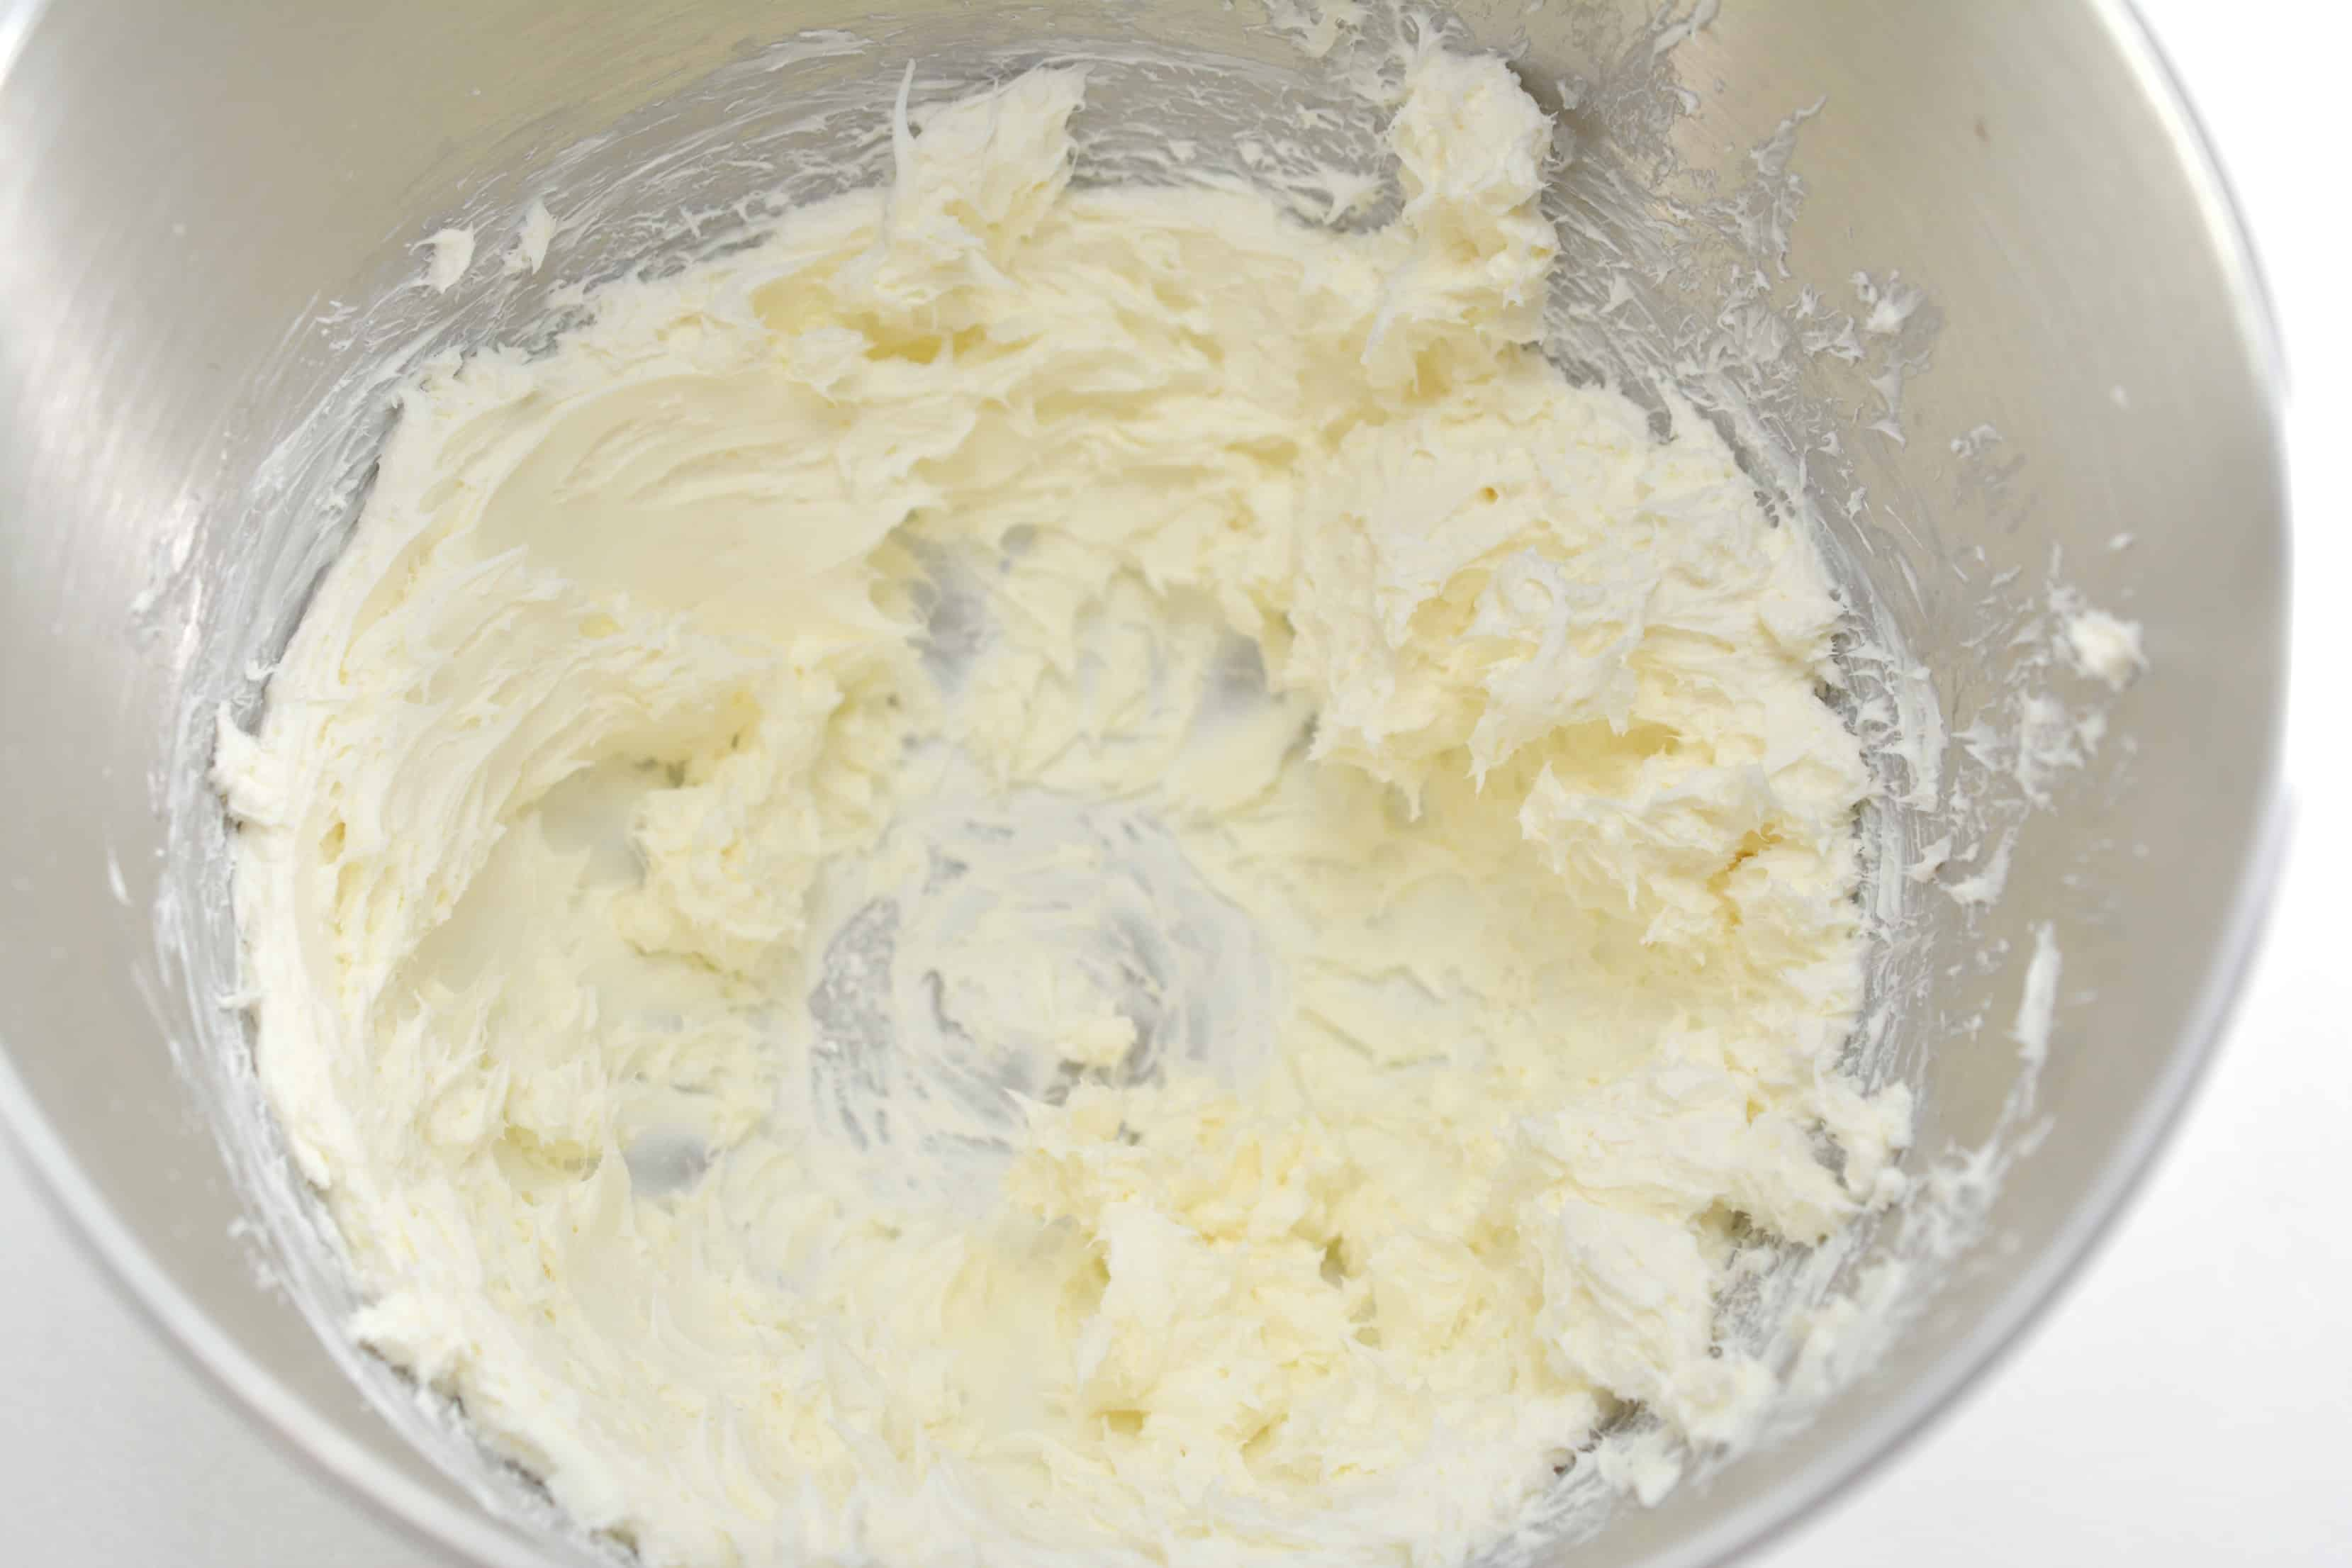 beaten cream cheese in a mixing bowl